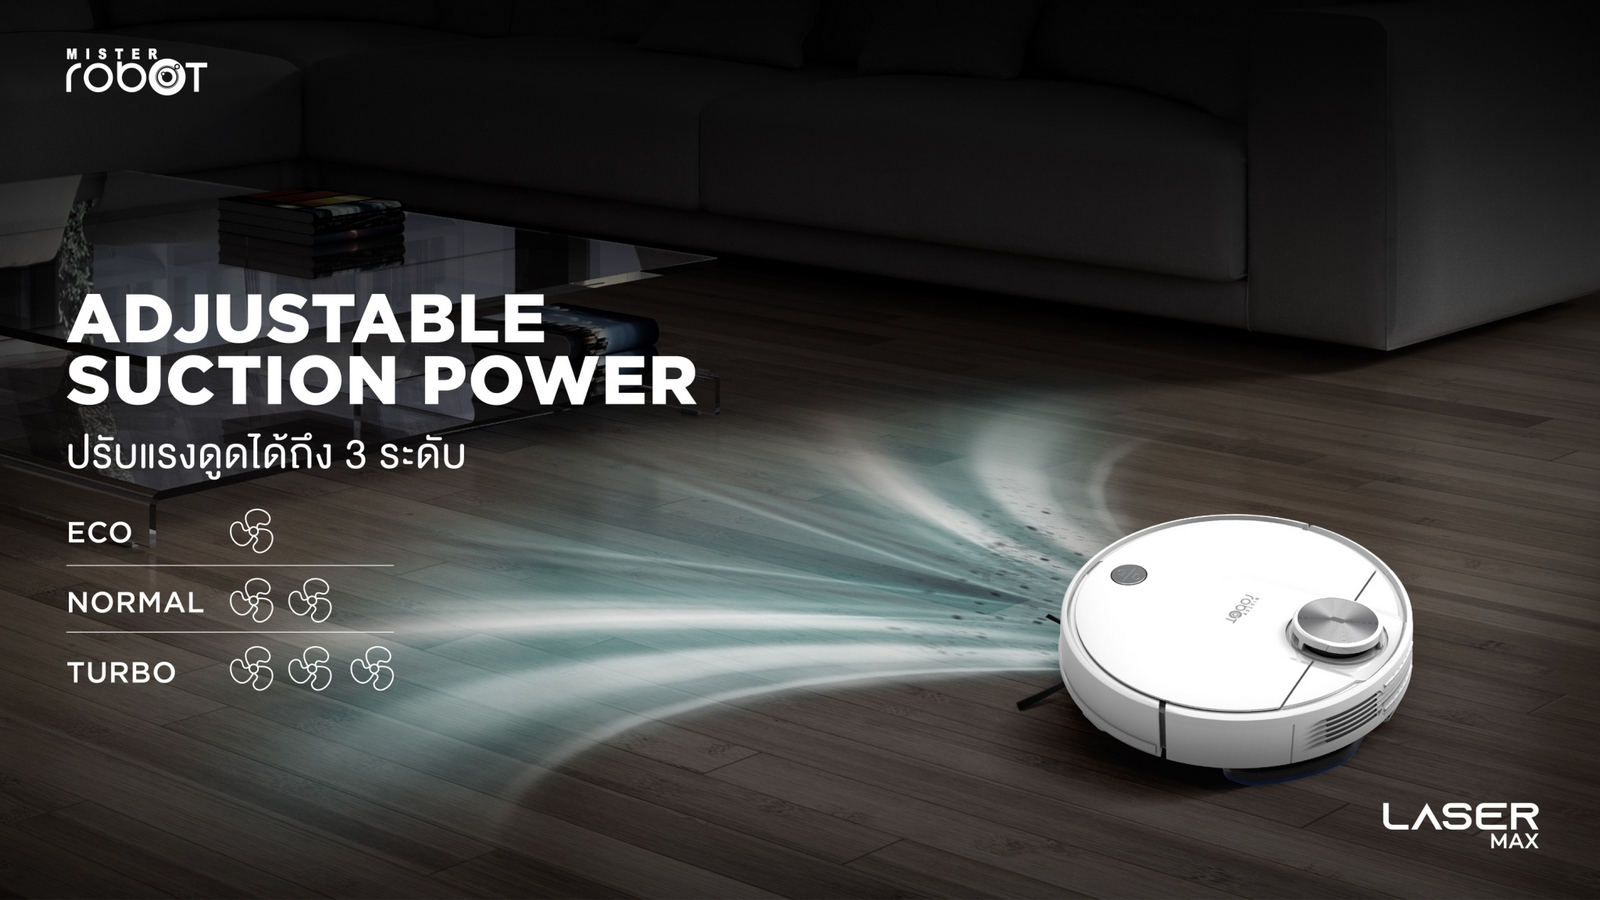 mister-robot-laser-max-feature-adjustable-suction-power